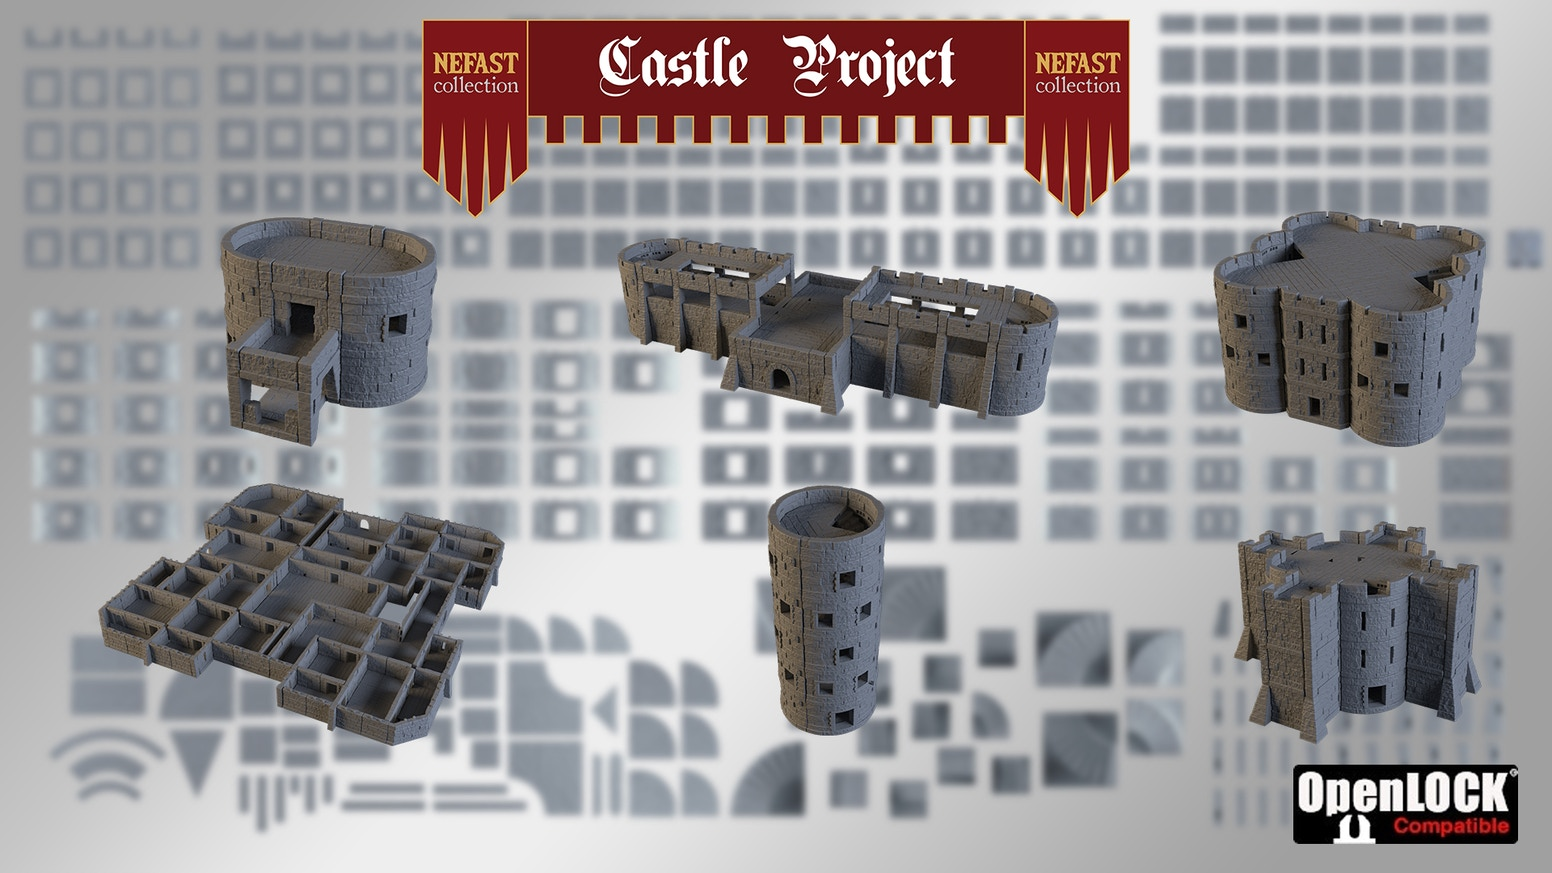 Castle Project is an OpenLOCK compatible modular castle, you get STL files and you print your buildings!